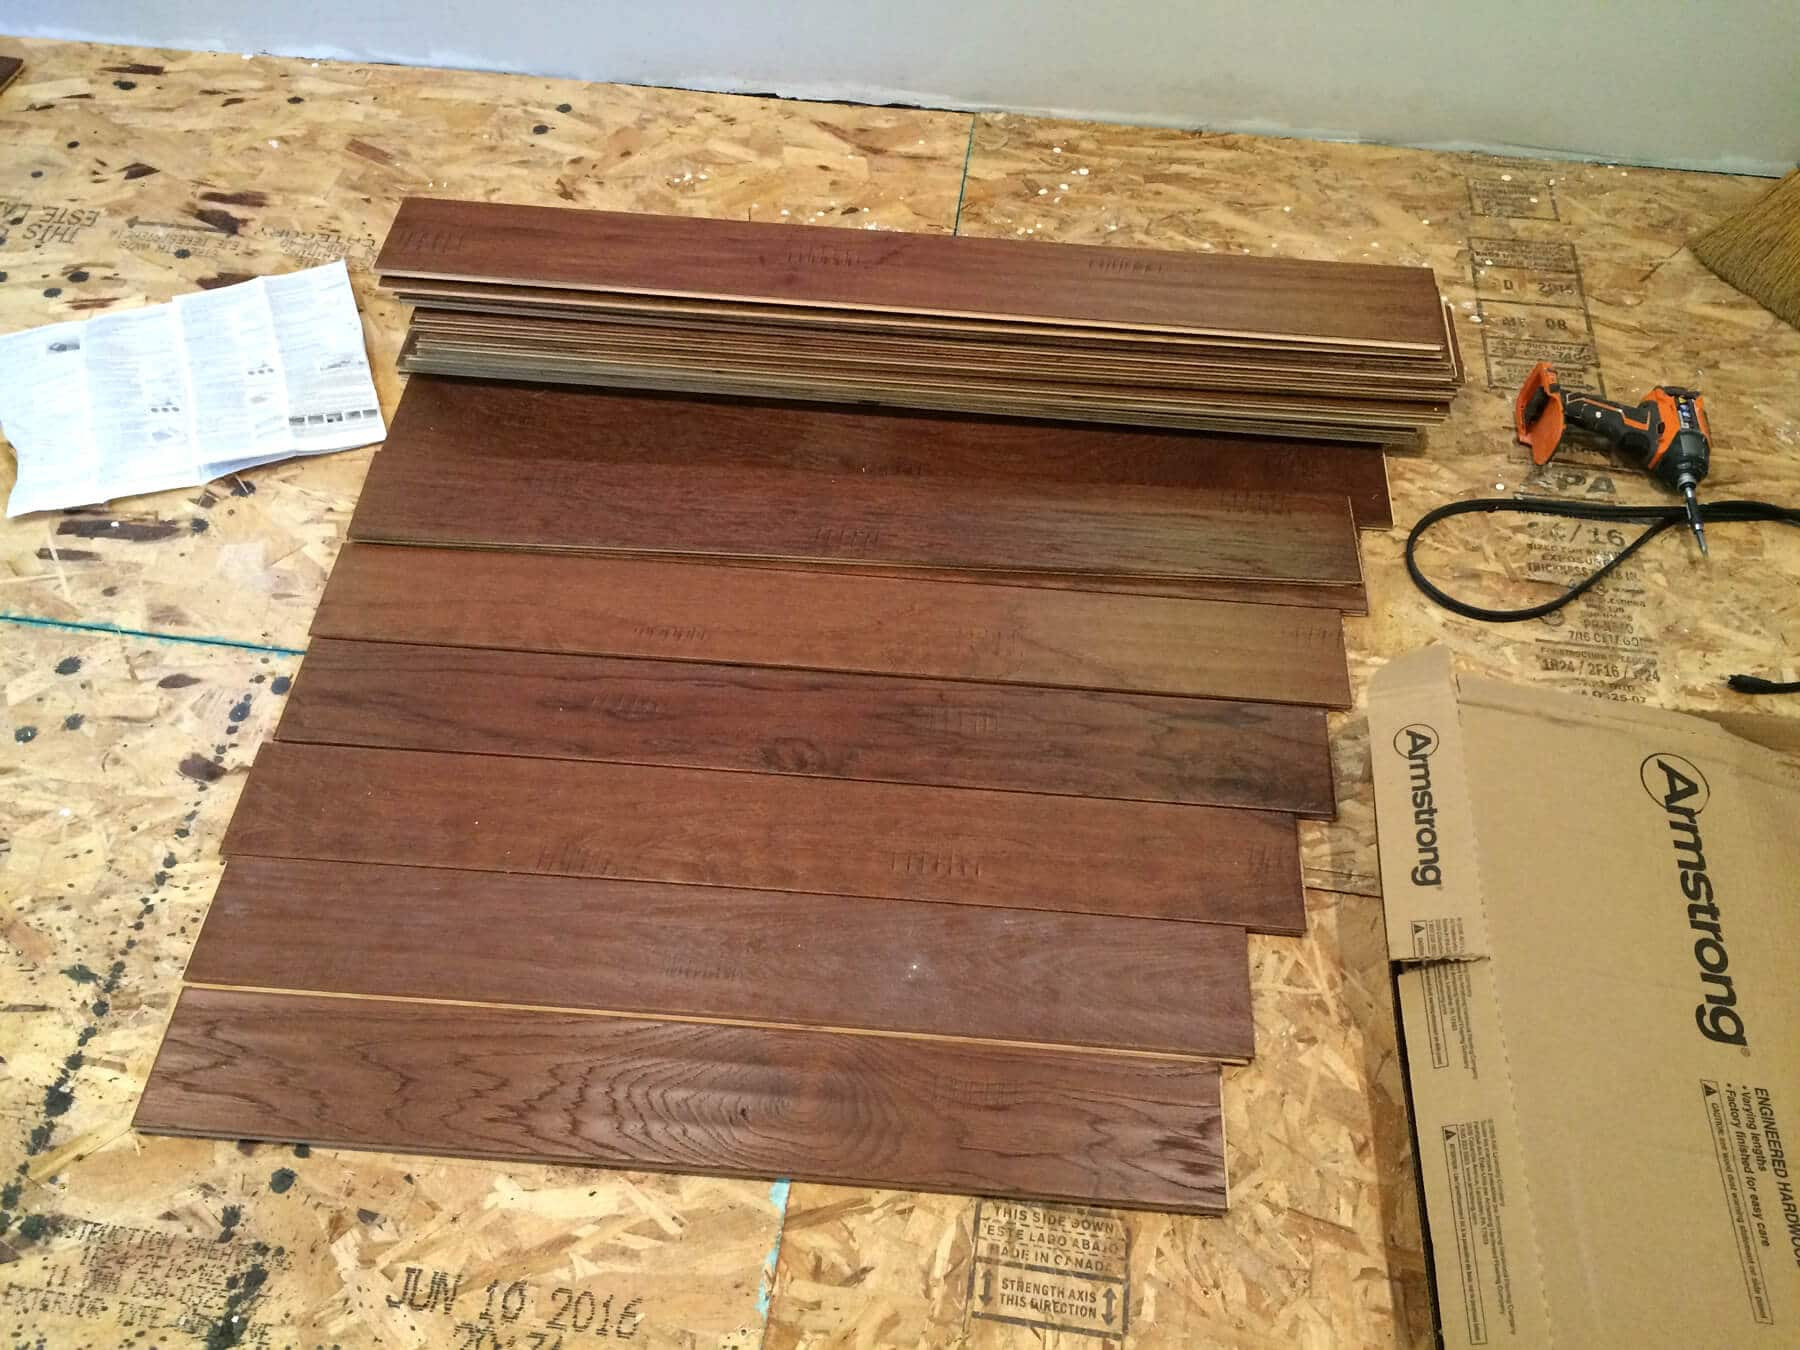 hardwood floor edge trim of the micro dwelling project part 5 flooring the daring gourmet in laying down the sub flooring was fine but honestly the thought of installing hardwood floors seemed extremely intimidating we were pretty nervous going in